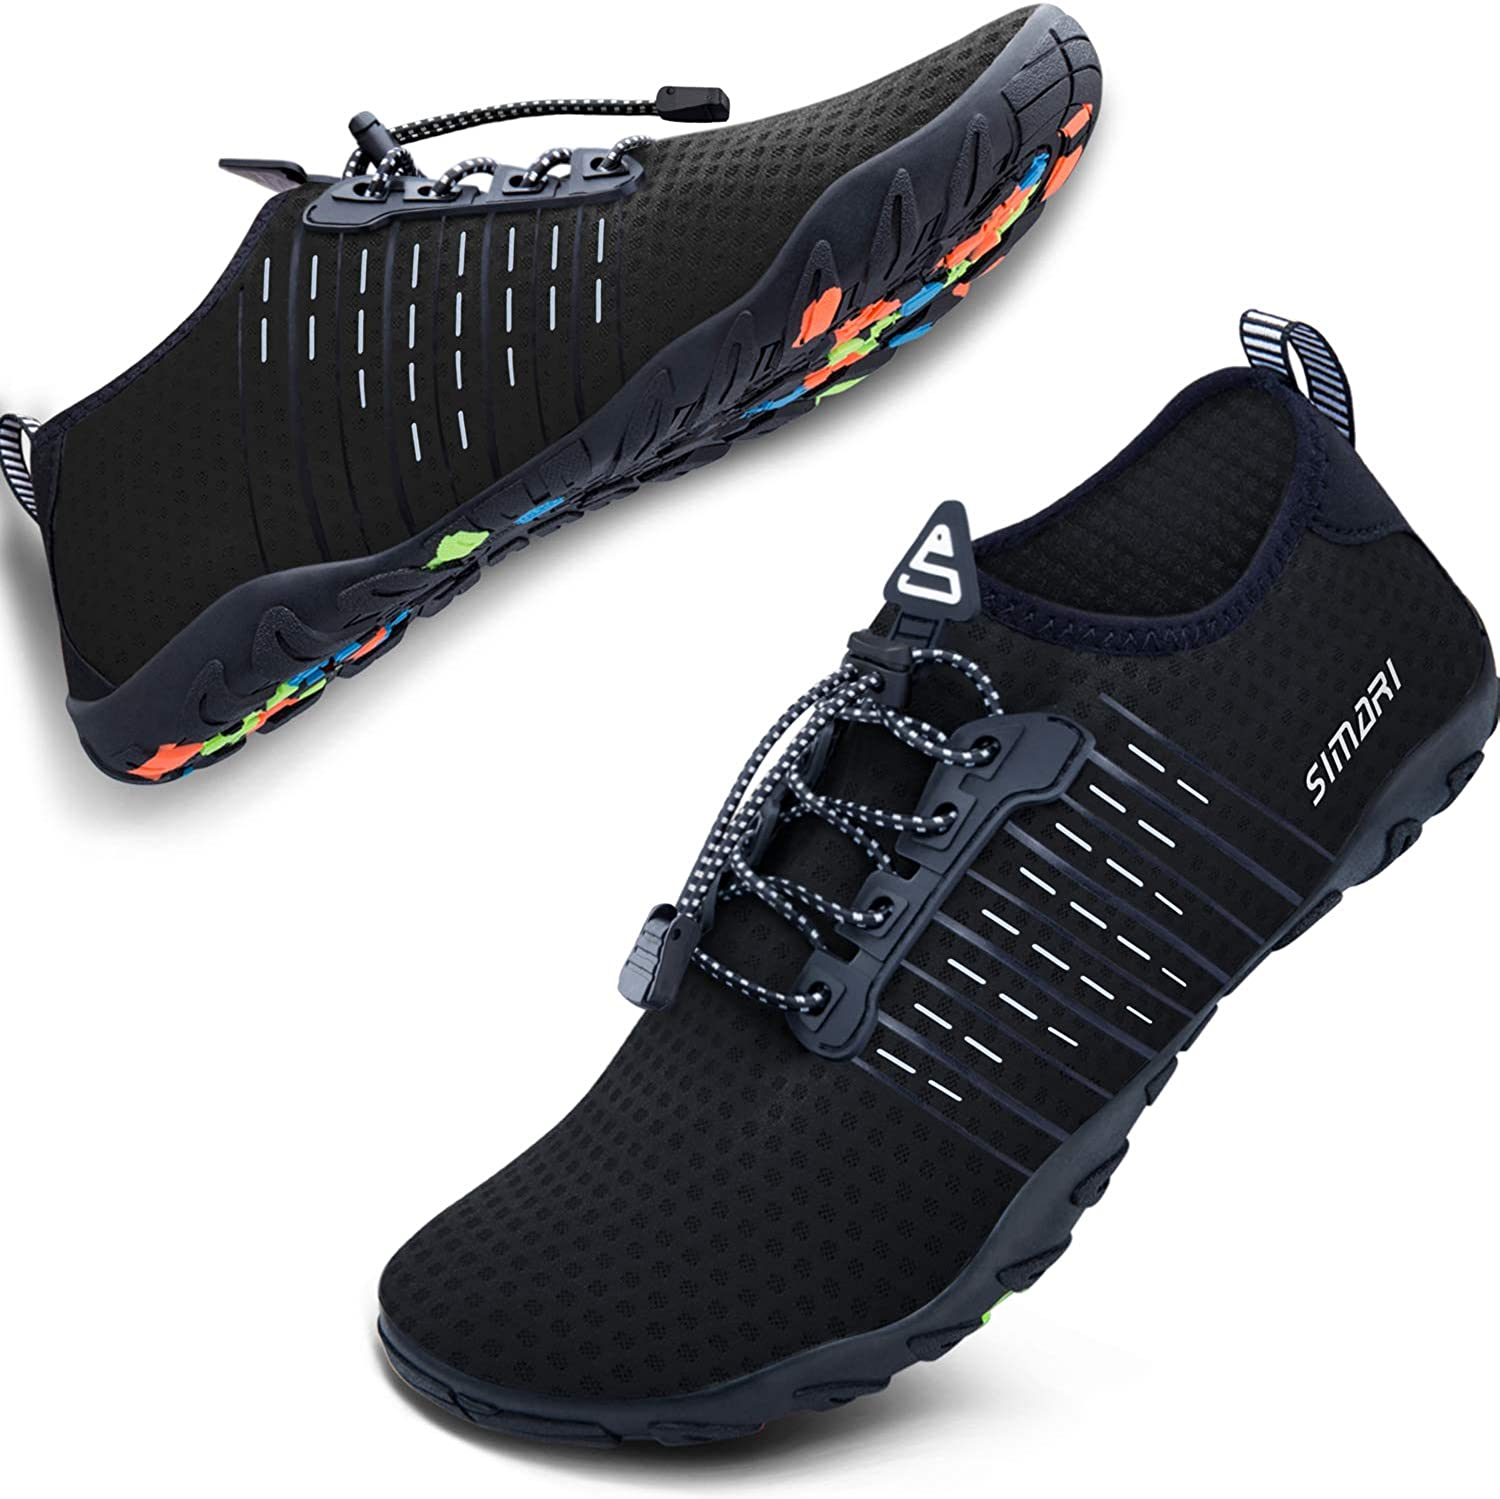 Clearance SALE Store Limited time SIMARI Water Shoes Mens Womens Dry Sports Diving Barefoot Quick